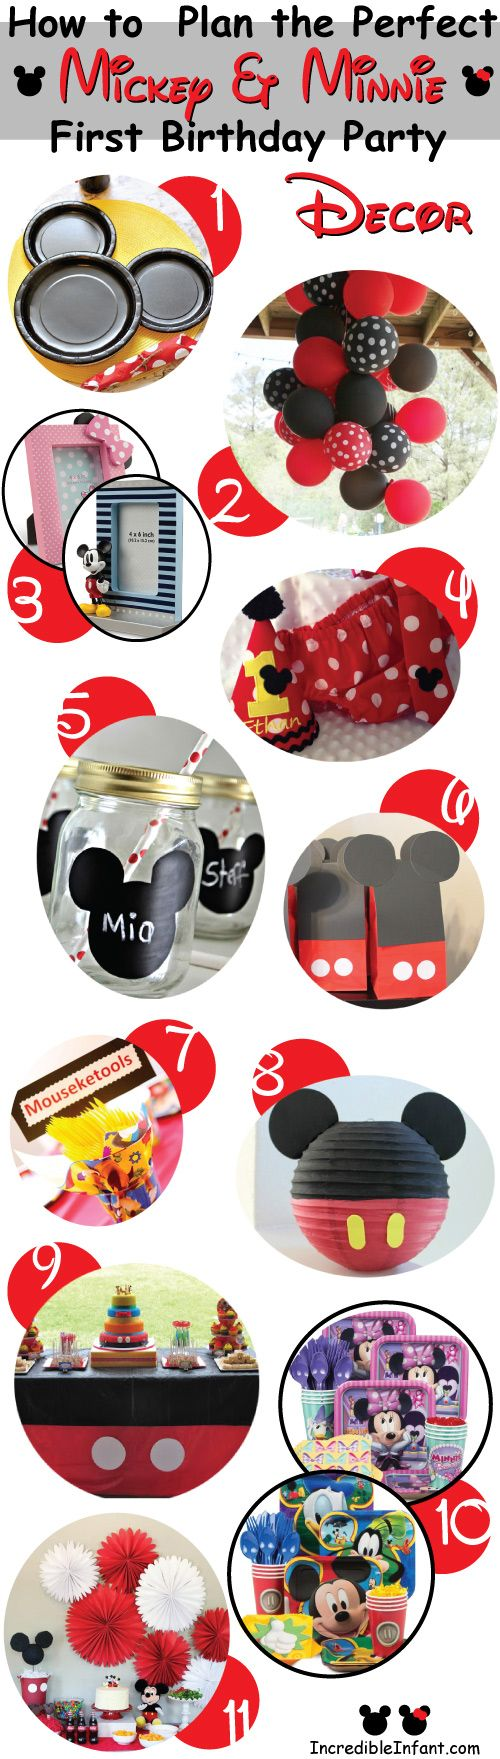 How to Plan the Perfect Mickey & Minnie First Birthday Party - Decor